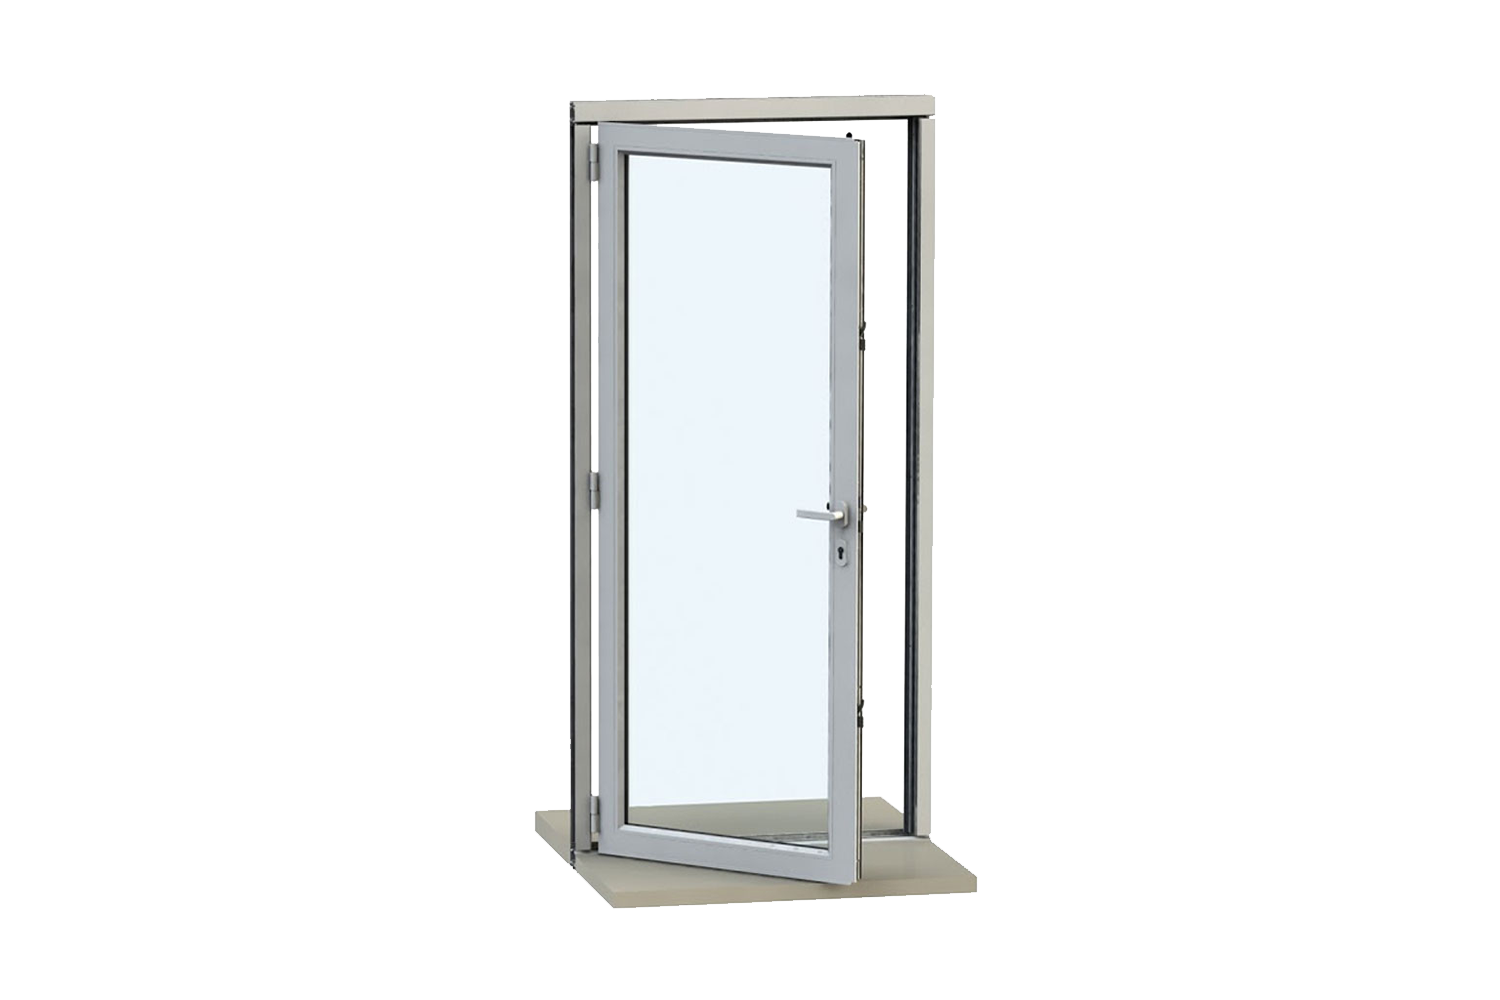 Residential Aluminum Entrance Doors : Aluminum residential doors trade east anglia